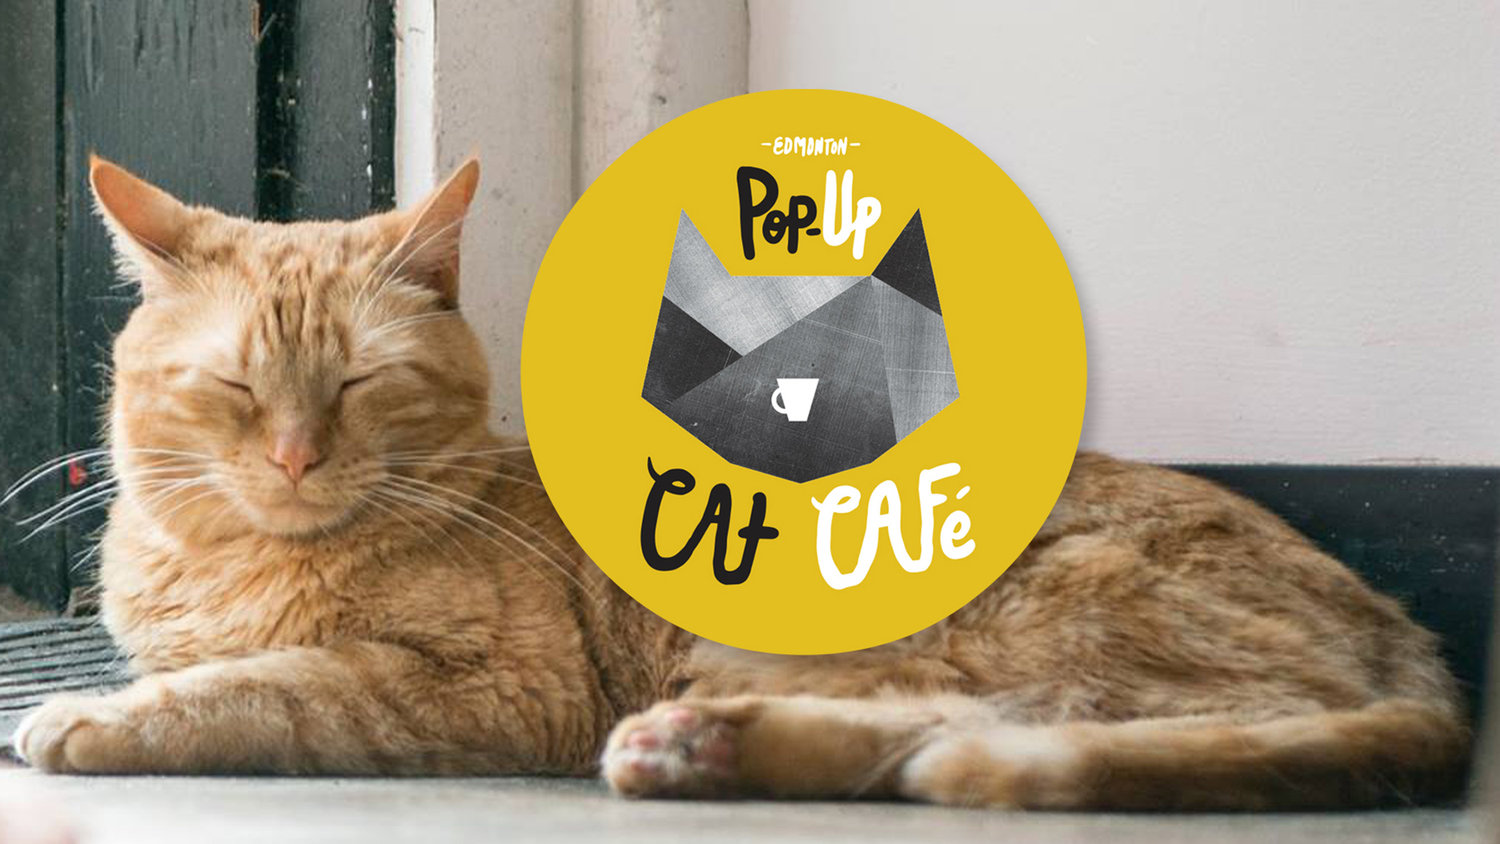 Edmonton Pop-Up Cat Cafe